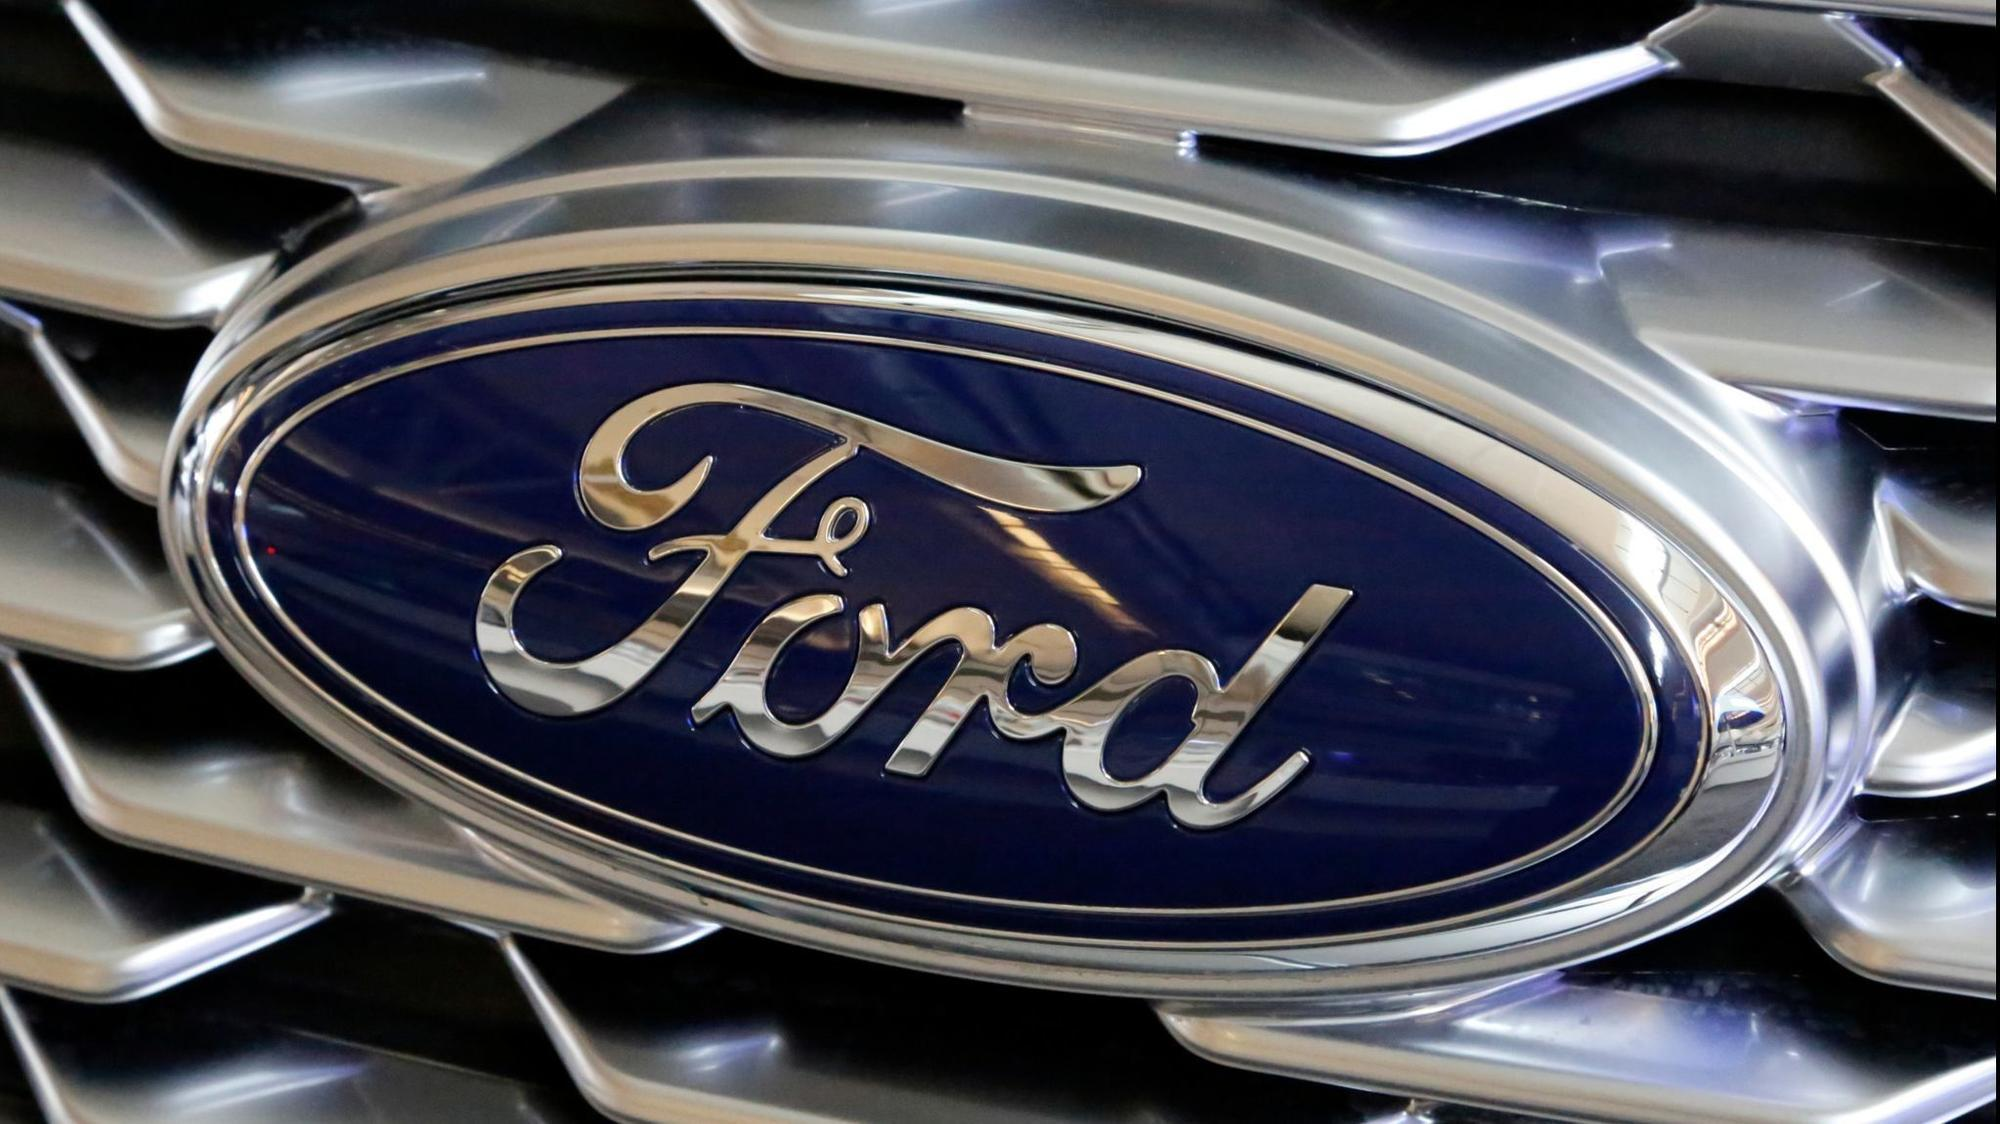 Ford is ditching these car models - Lehigh Valley Business Cycle